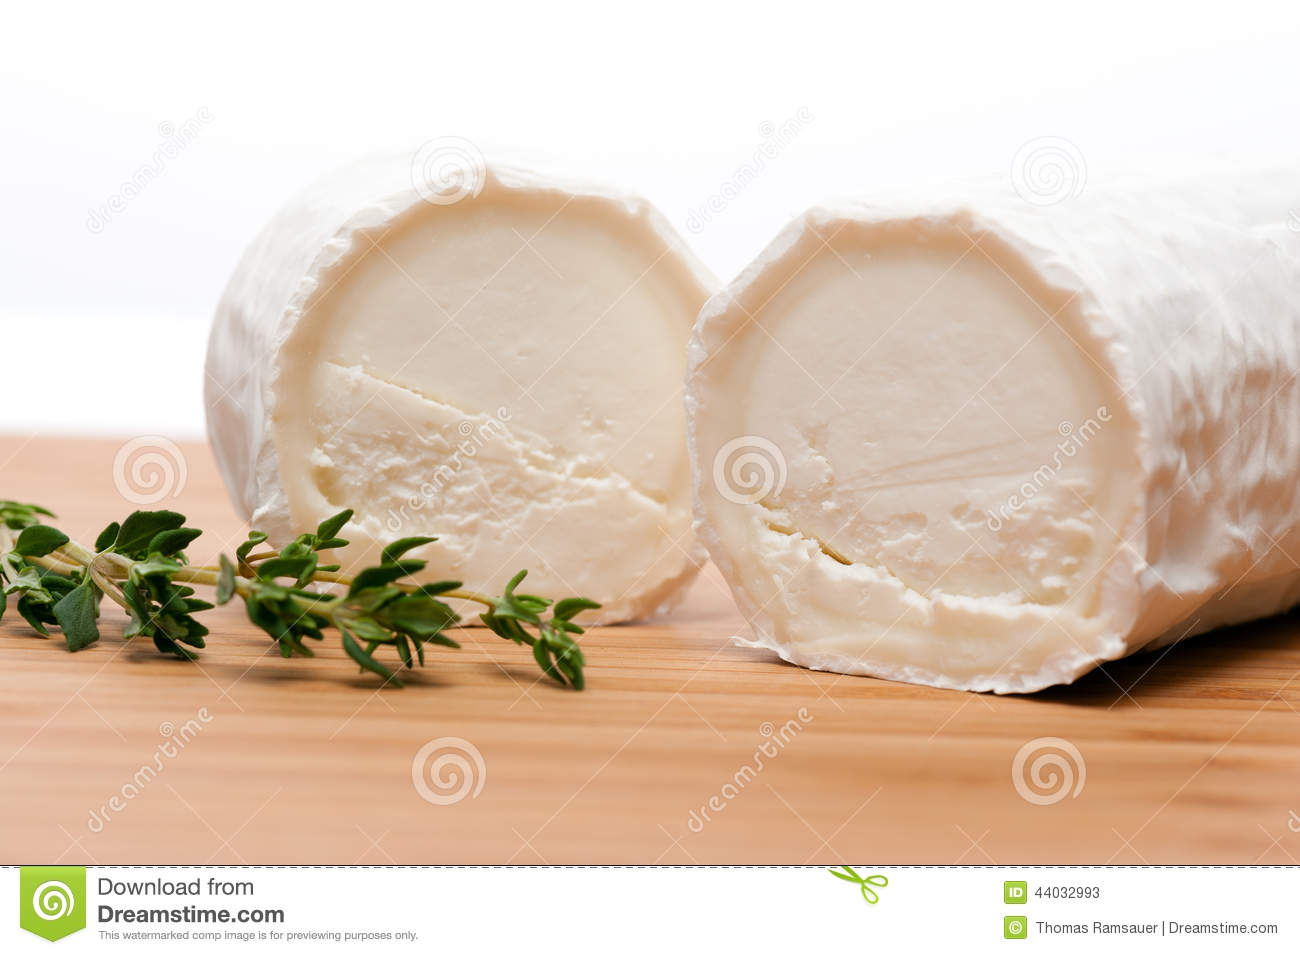 Goat cheese with thyme on a wooden cutting board